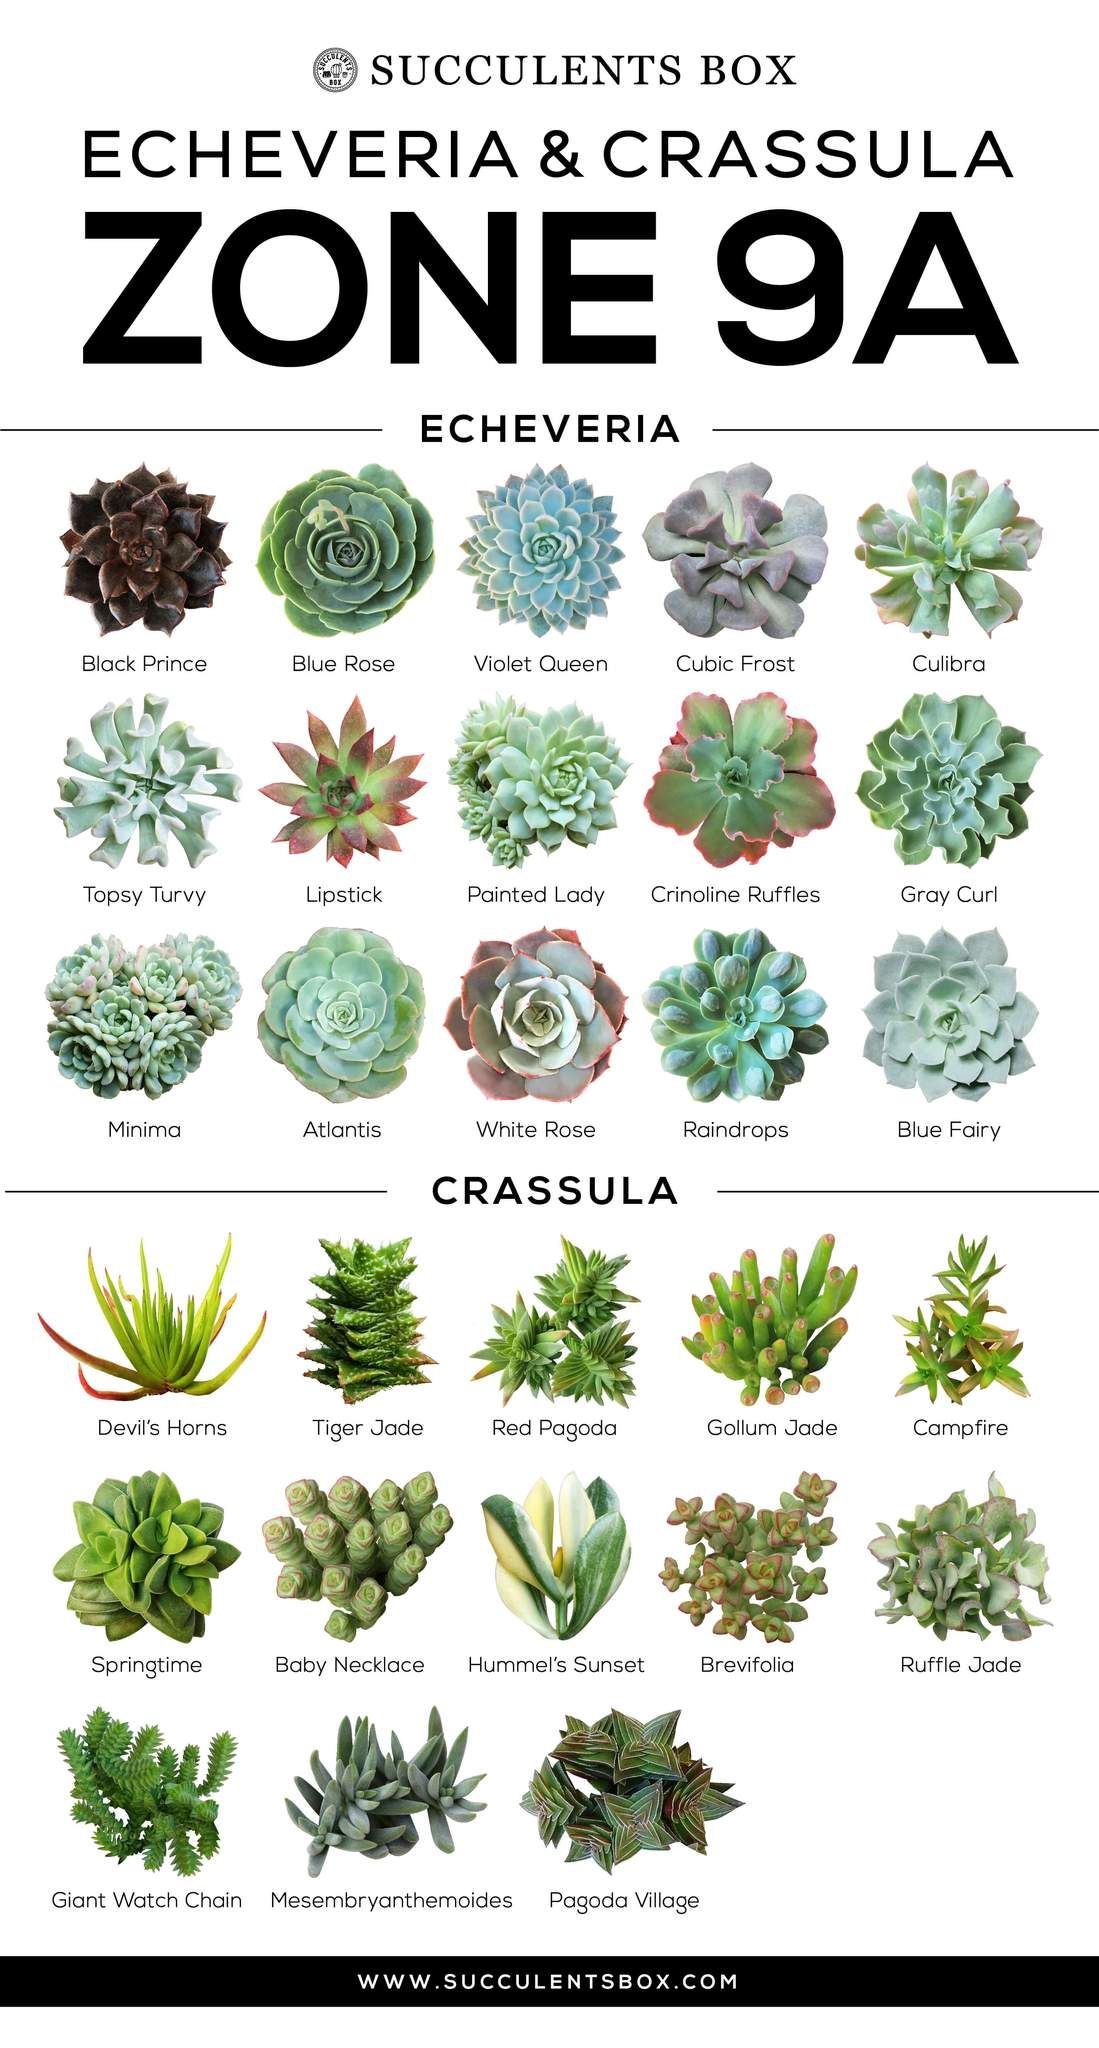 CHOOSING SUCCULENTS FOR ZONE 9 - CALIFORNIA, FLORIDA AND ARIZONA #succulents